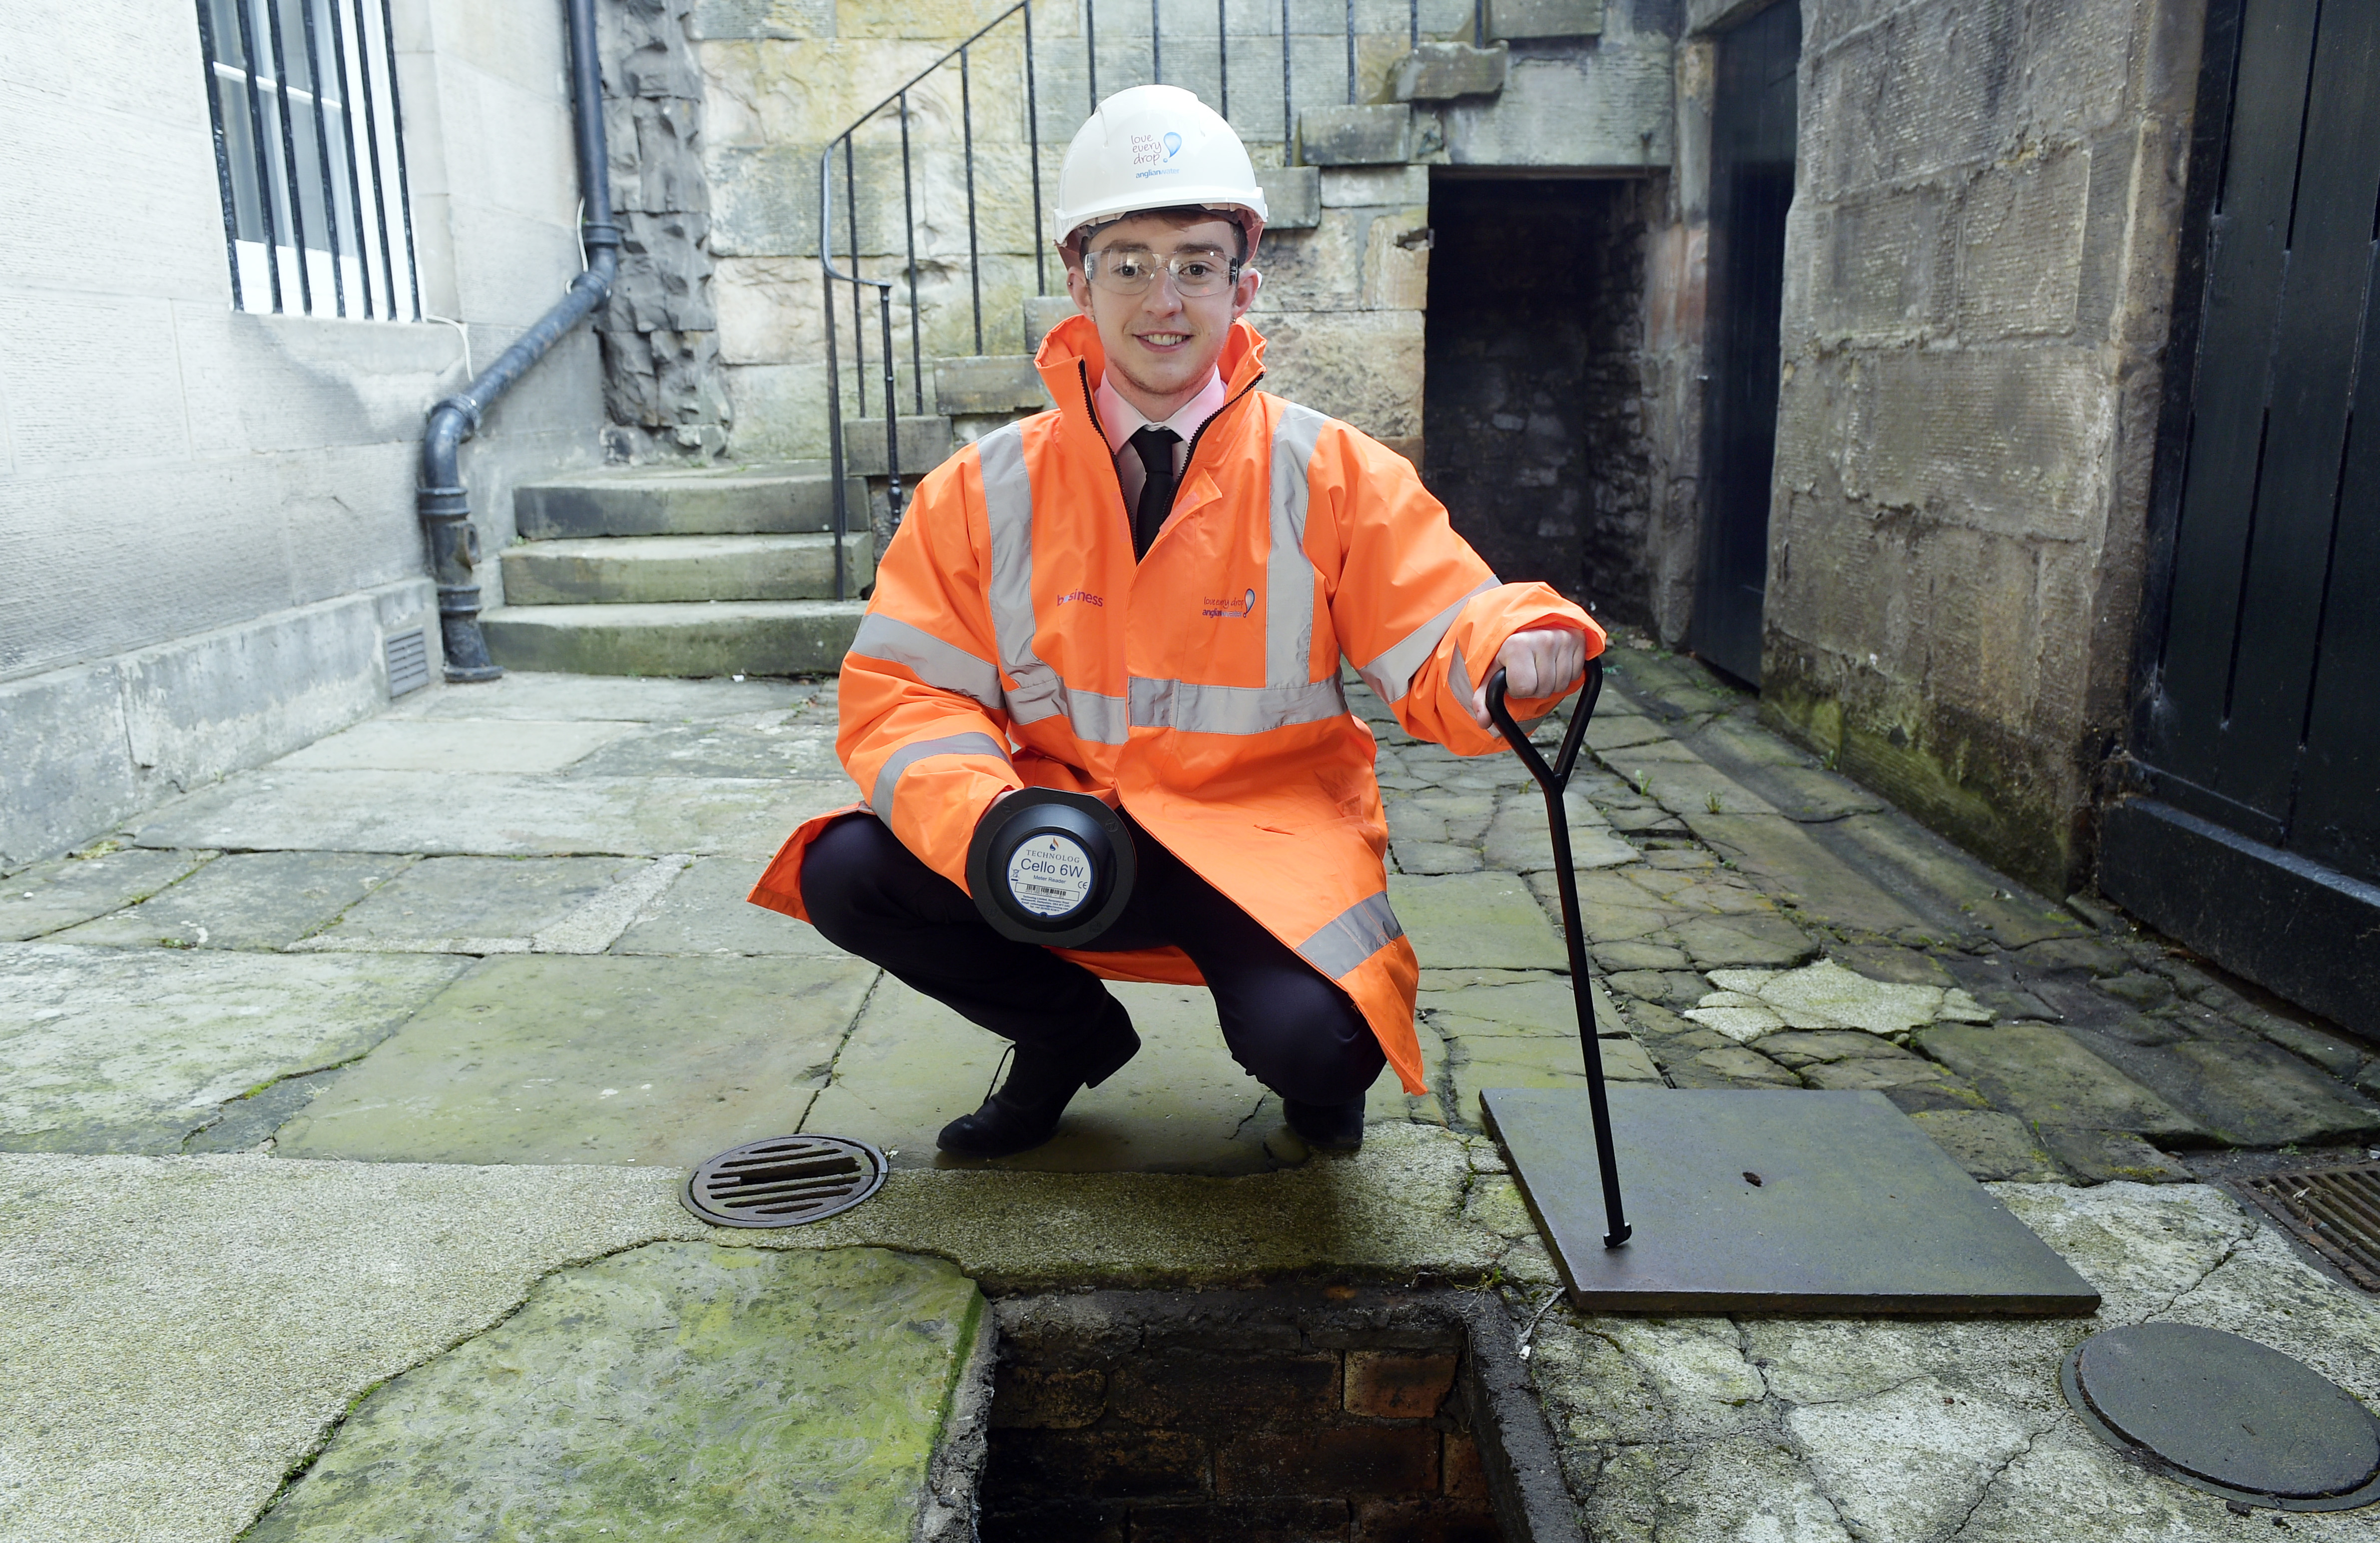 Anglian Water Business pictured apprentice Owen Forrest | © Sandy Young